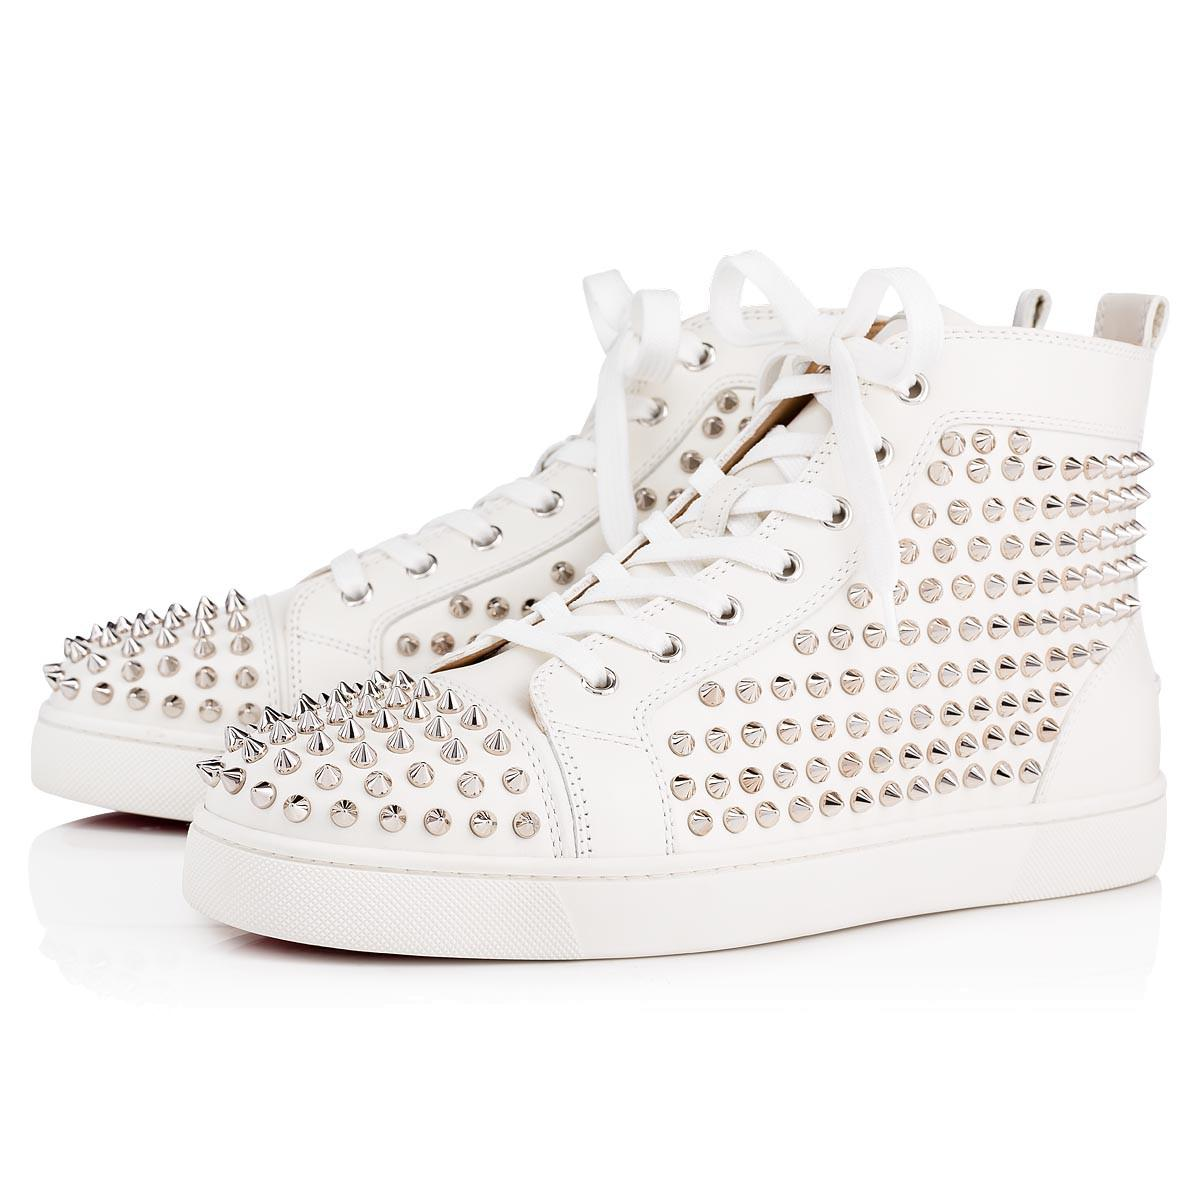 0b1f0cb49a3a Lyst - Christian Louboutin Louis Spikes Men s Flat for Men